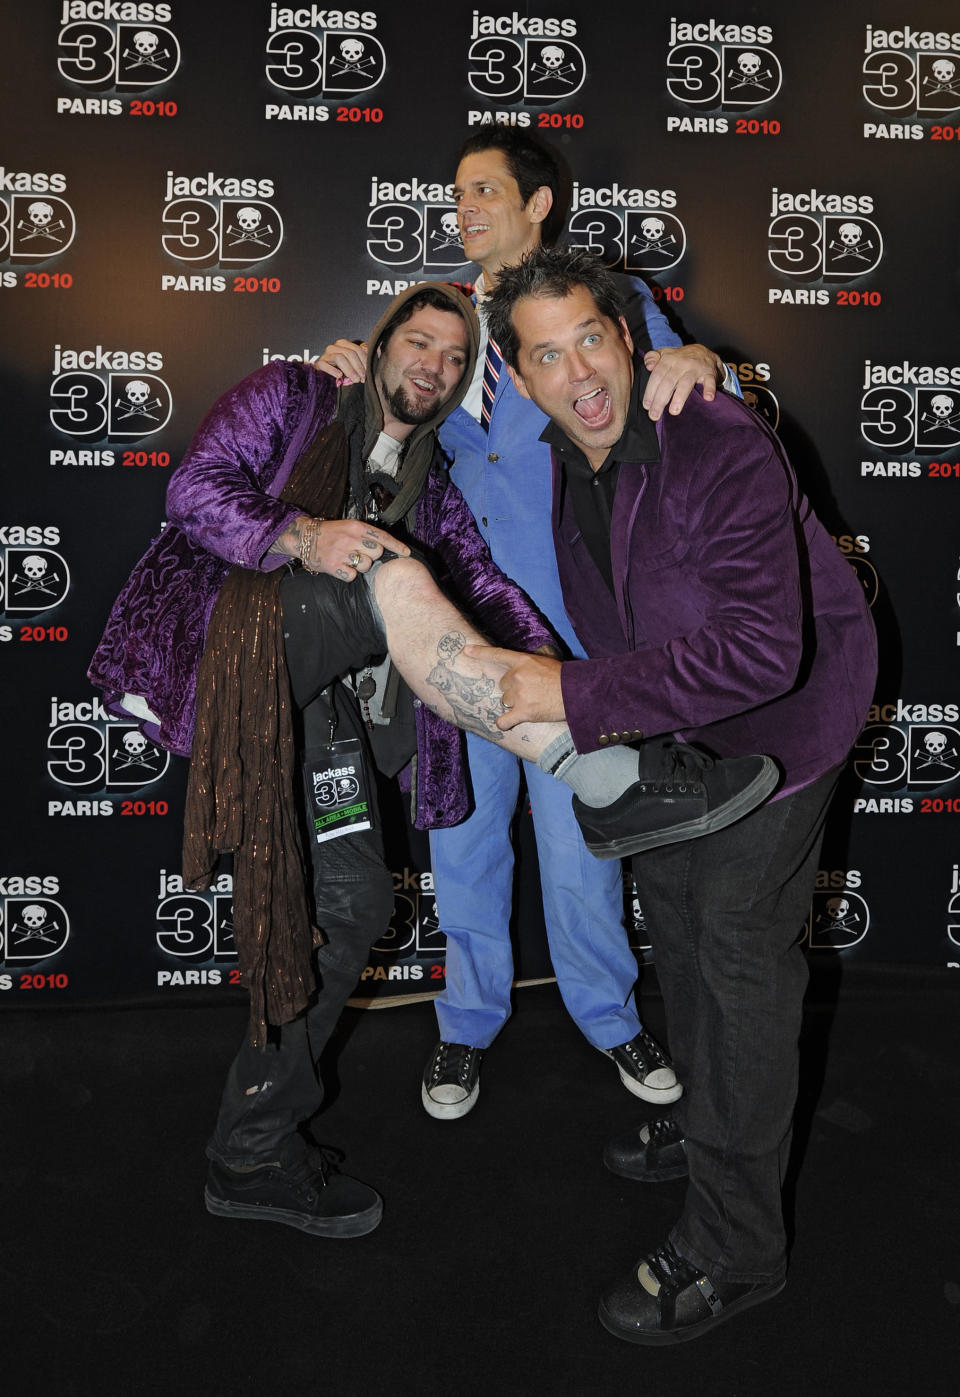 US actors and cast members Johnny Knoxville, centre, and Bam Margera, left, and US director Jeff Tremaine  pose for photographers as they arrive to the Jackass 3D premiere in Paris, Wednesday, Oct. 27,  2010. (AP Photo/Yoan Valat)